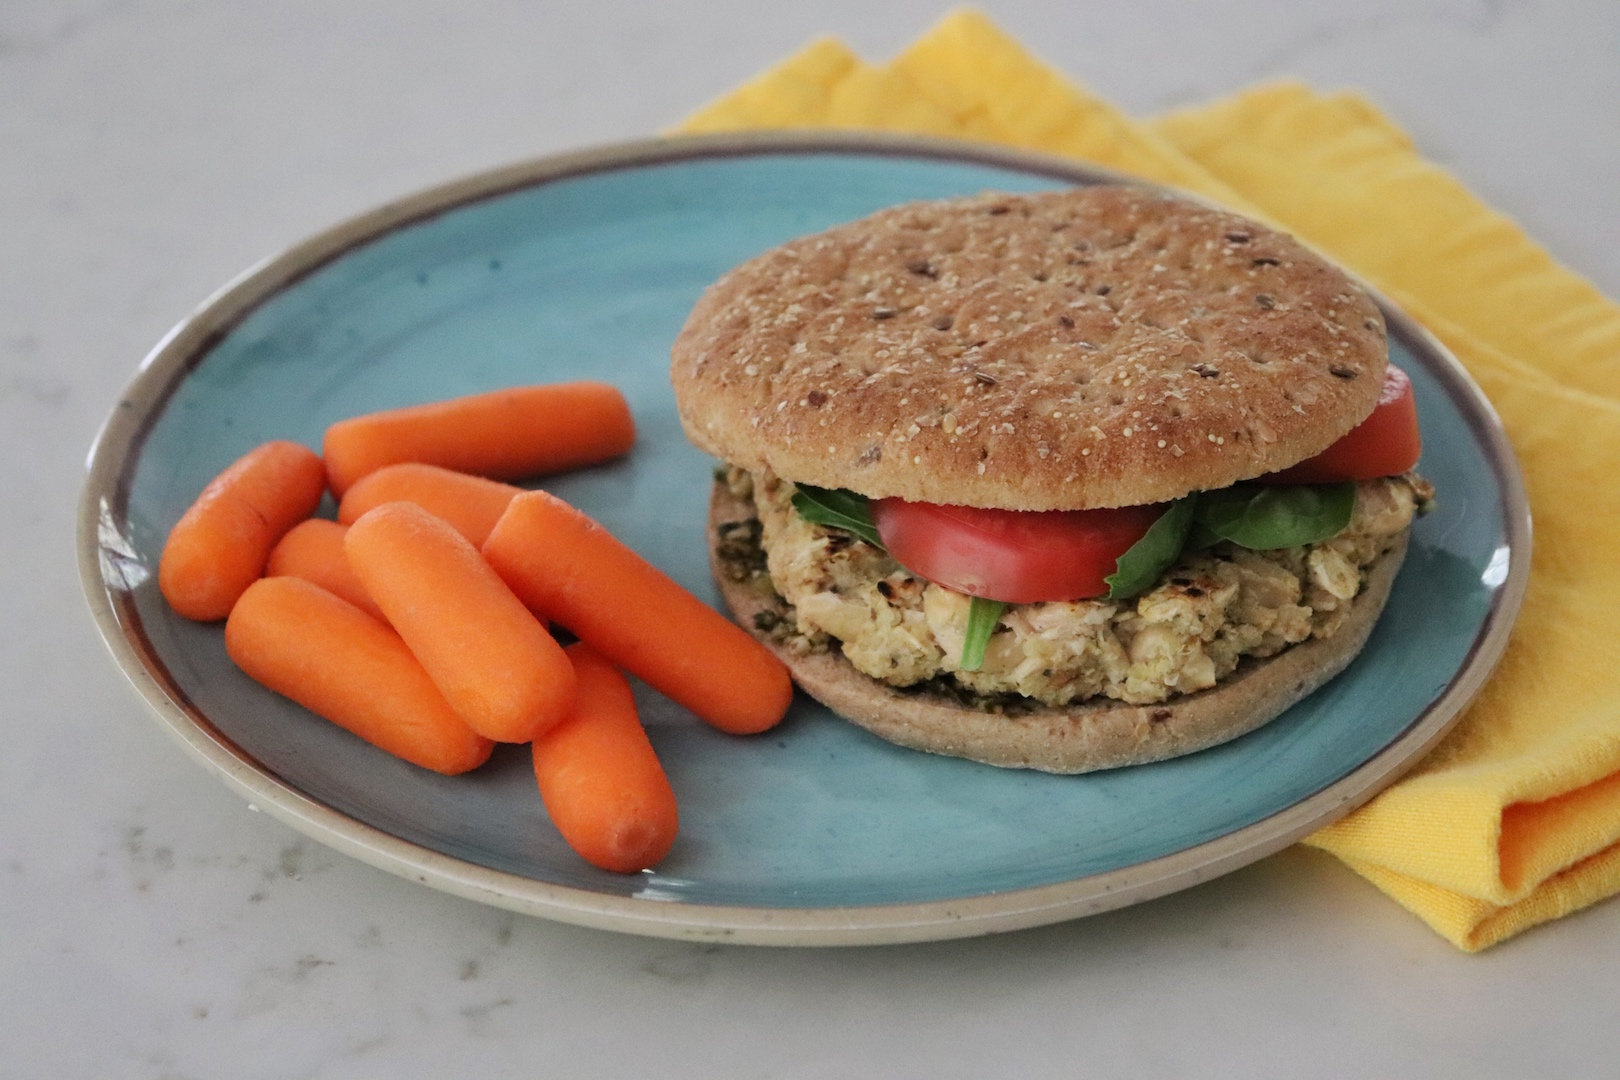 Flaxseed Quinoa and White Bean Burger on a blue plate with carrots